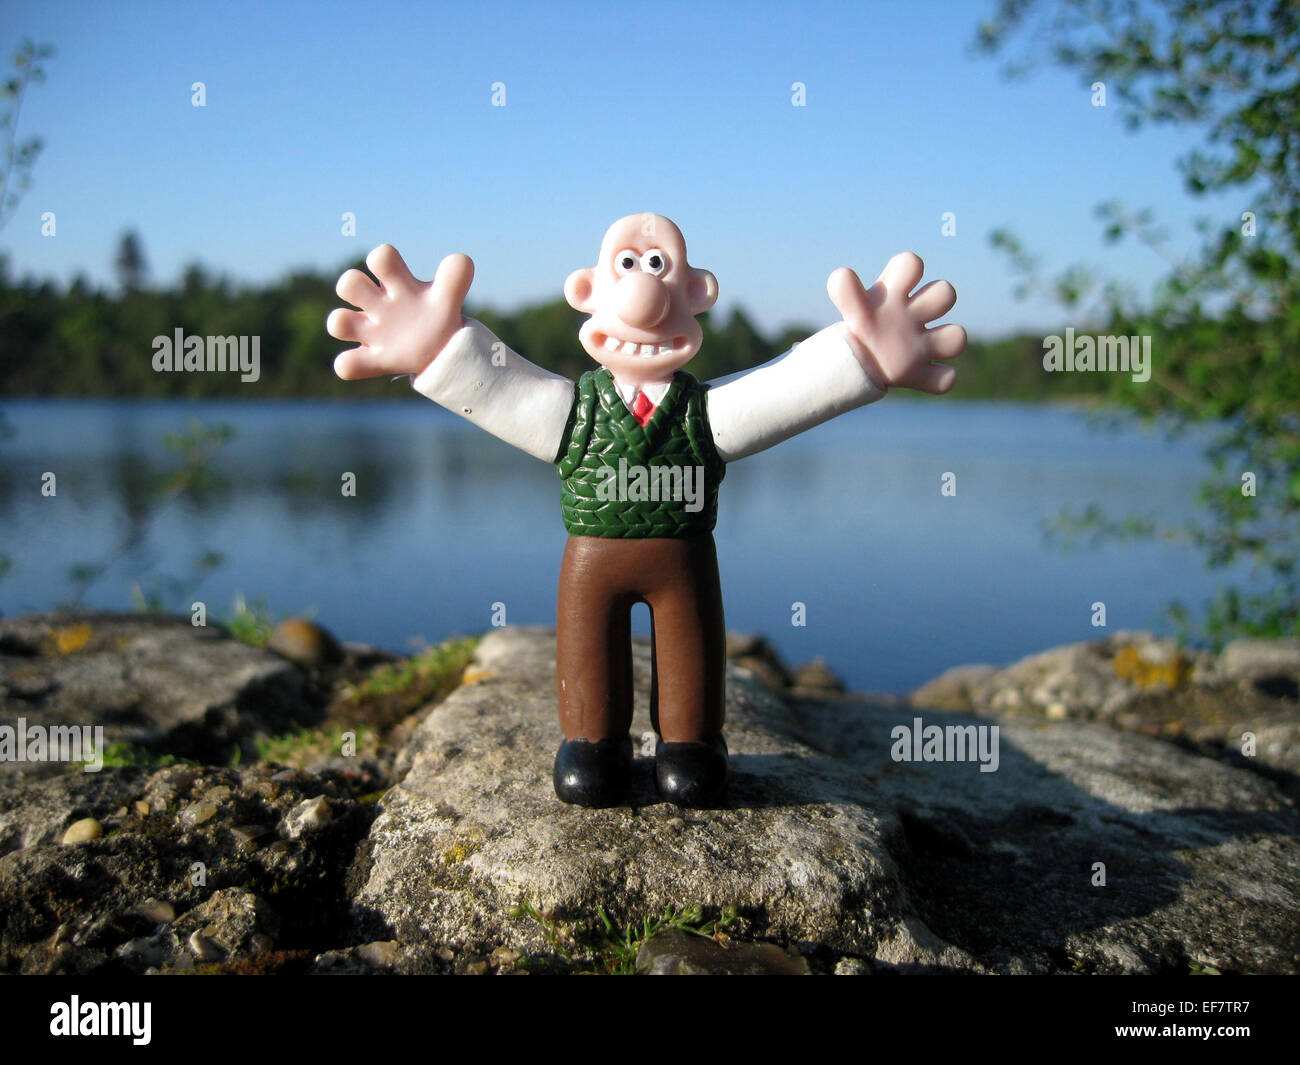 Give me a hug! - Stock Image